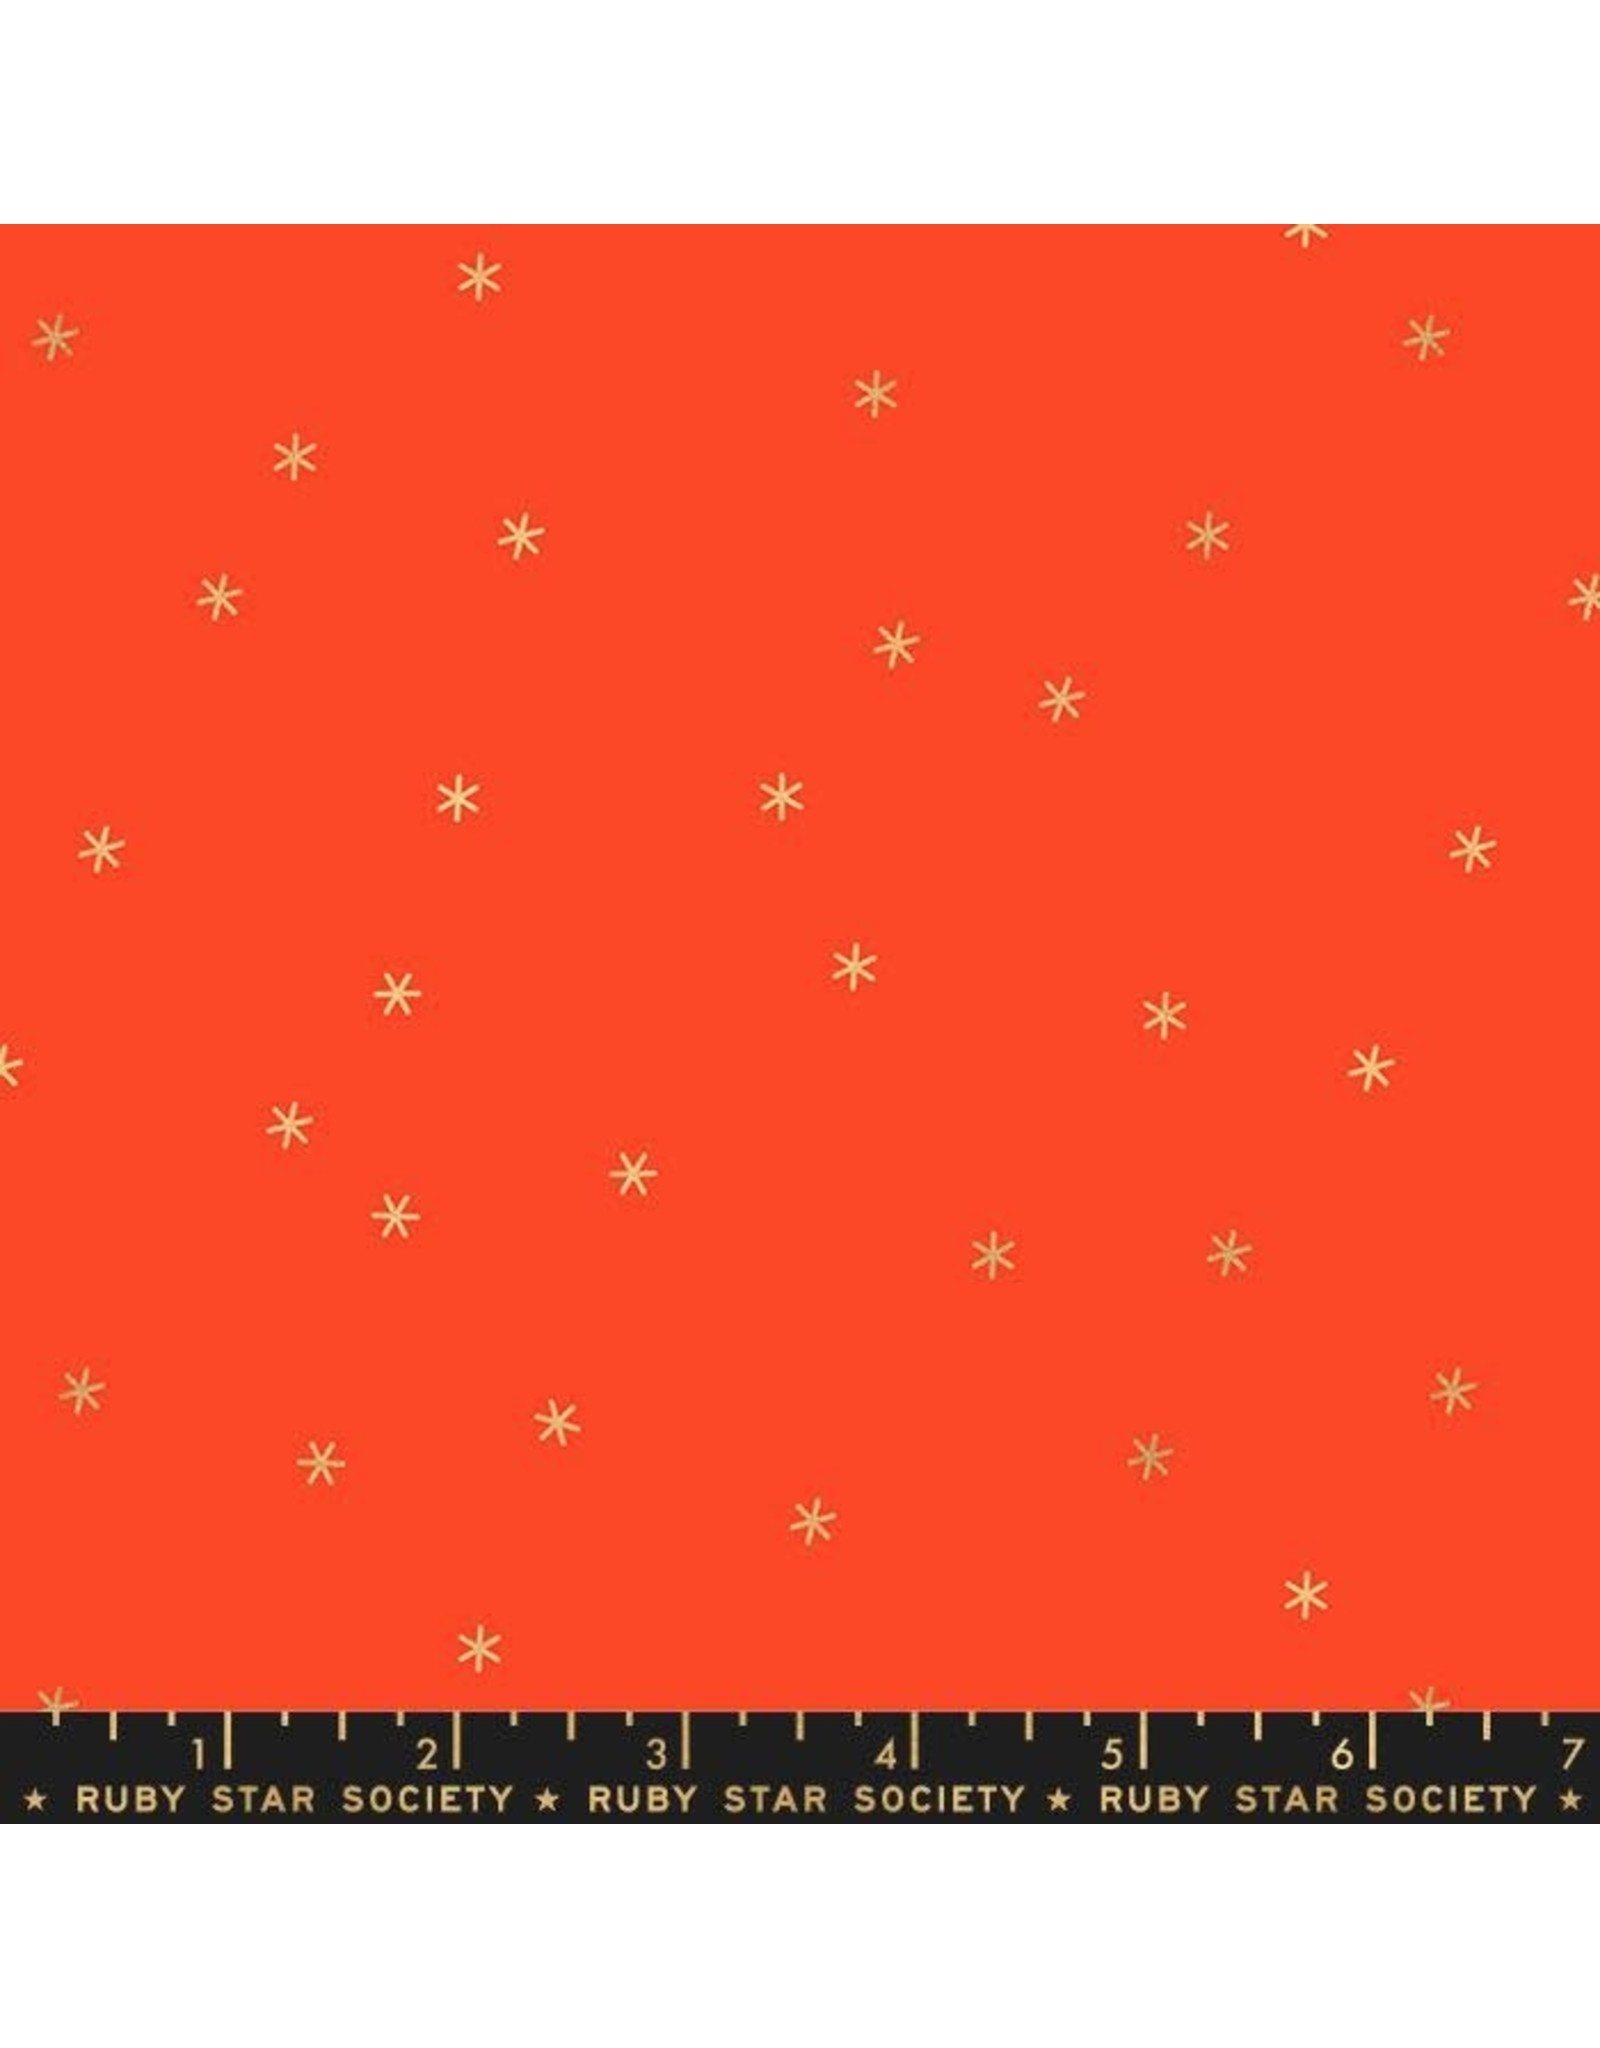 Melody Miller ON SALE-Ruby Star Society, Spark in Roadster Red with Gold Metallic, Fabric FULL-Yards